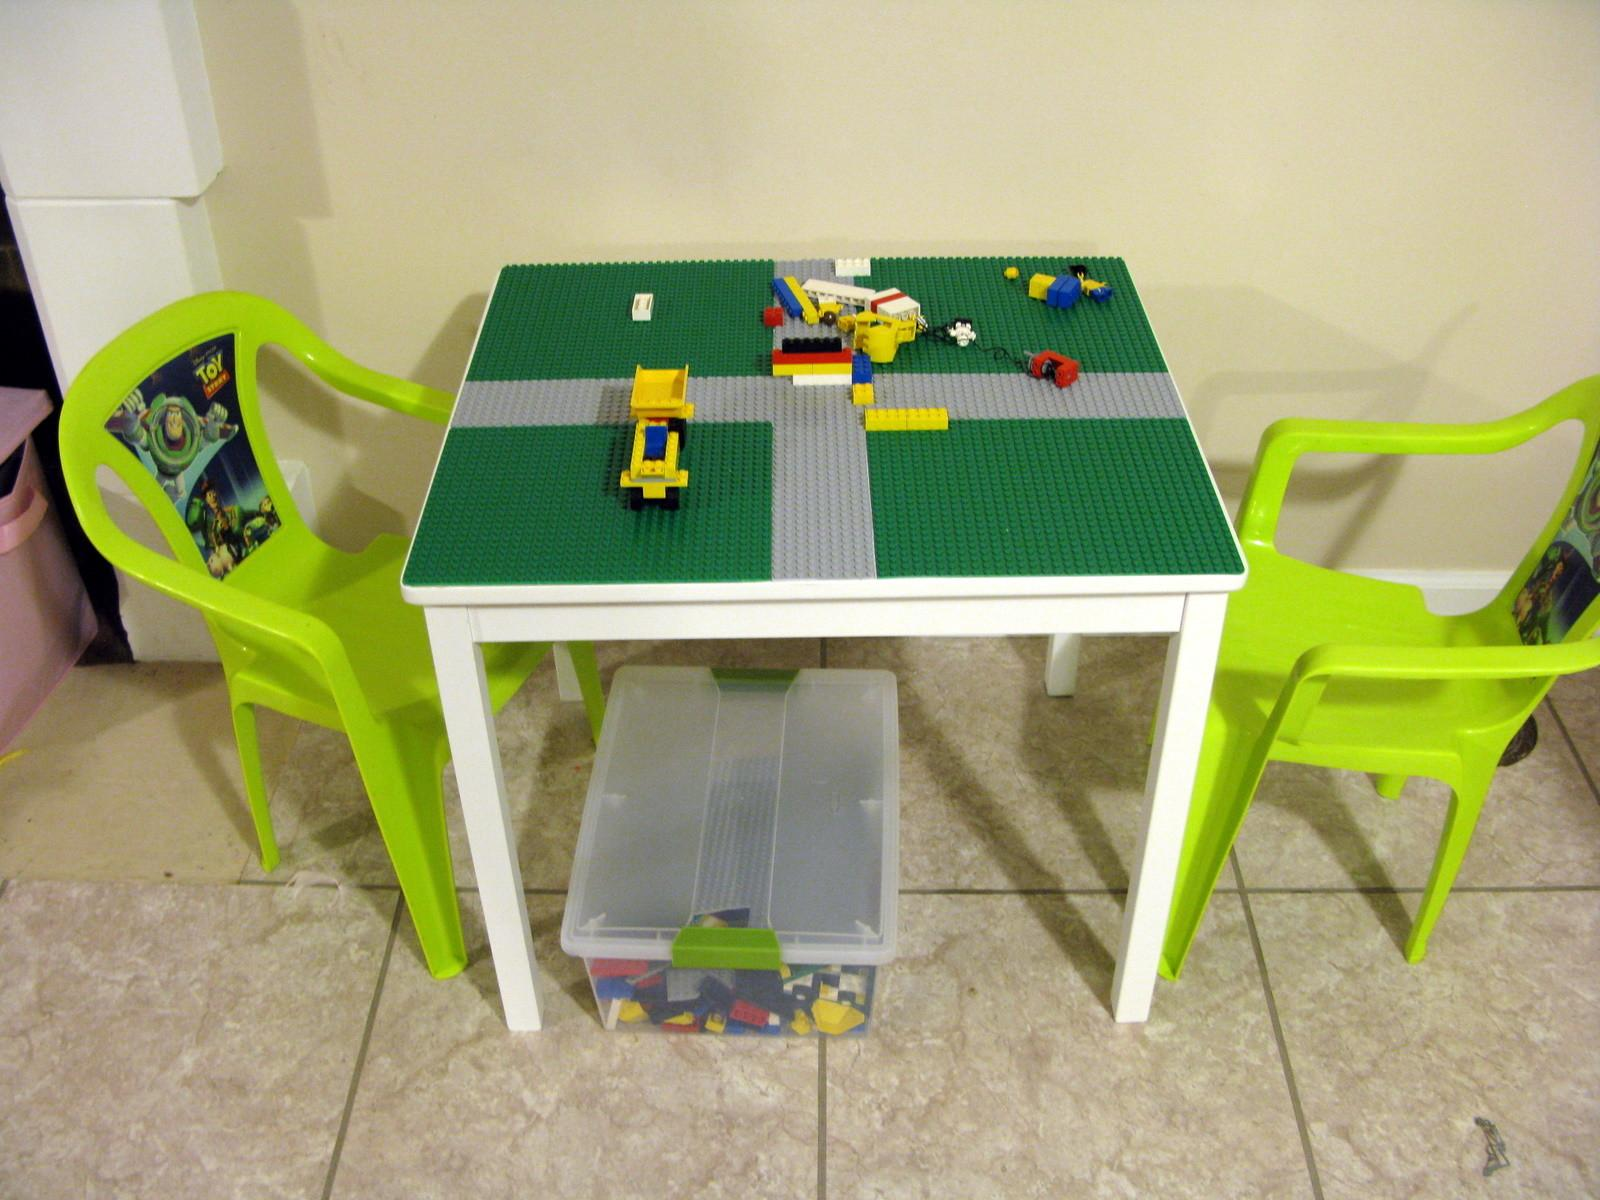 Diy Lego Table Finding Joy Everyday Life